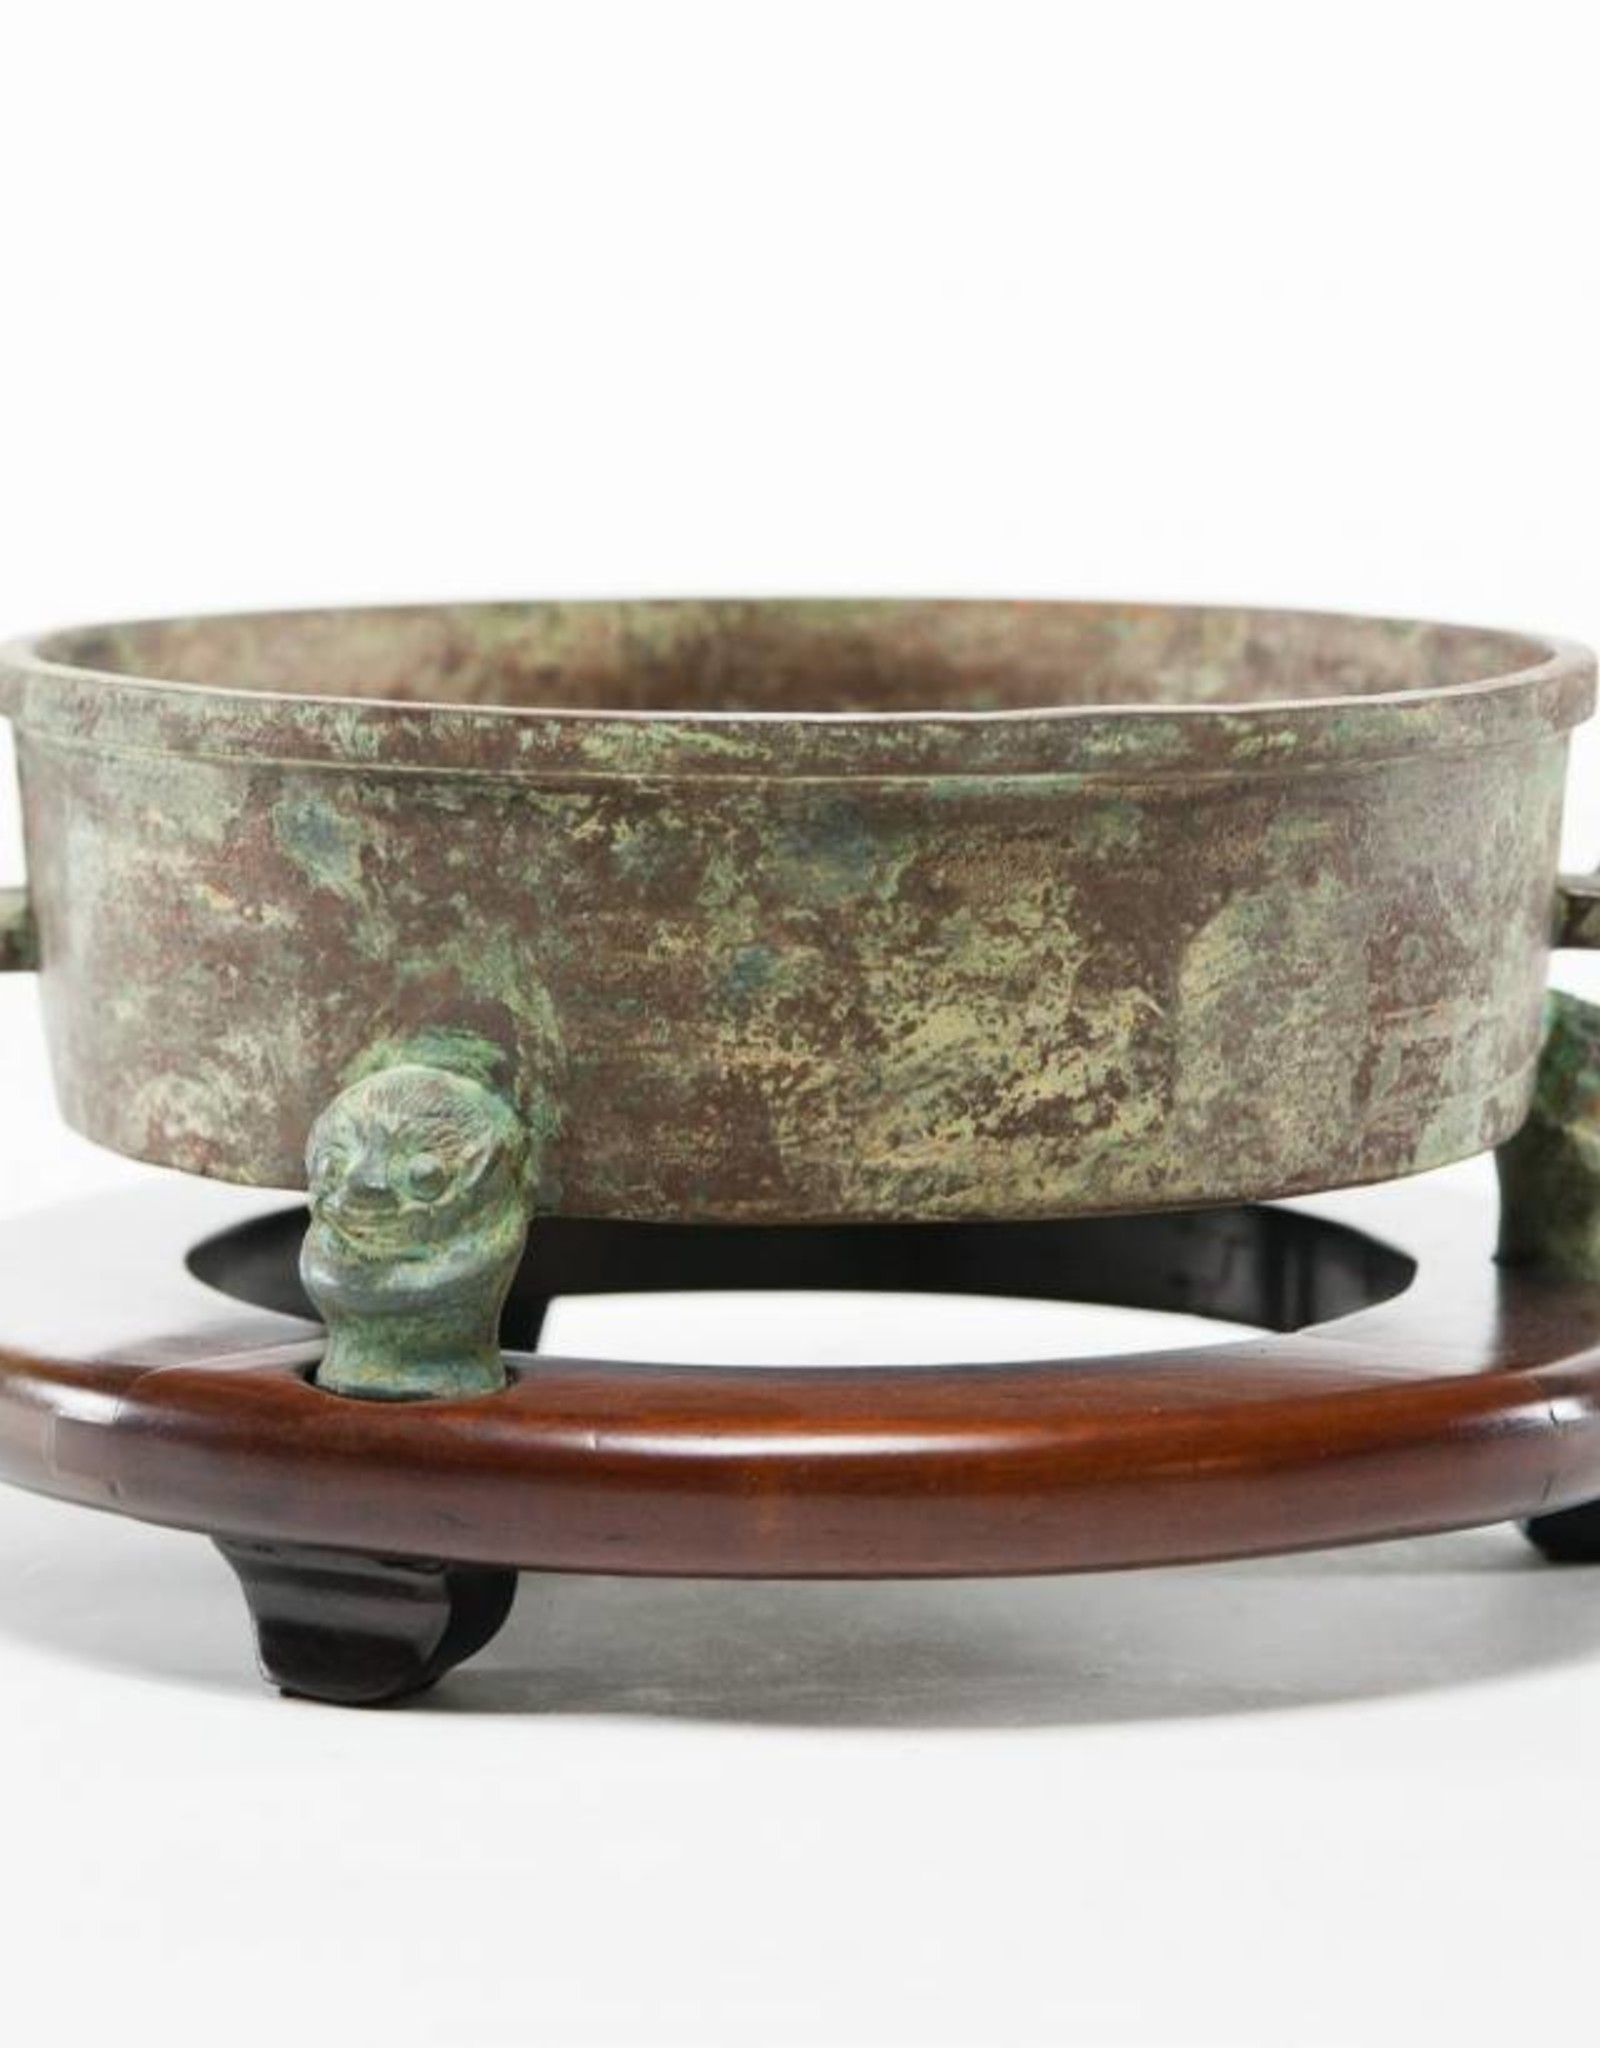 Lawrence & Scott Shallow P'an water vessel